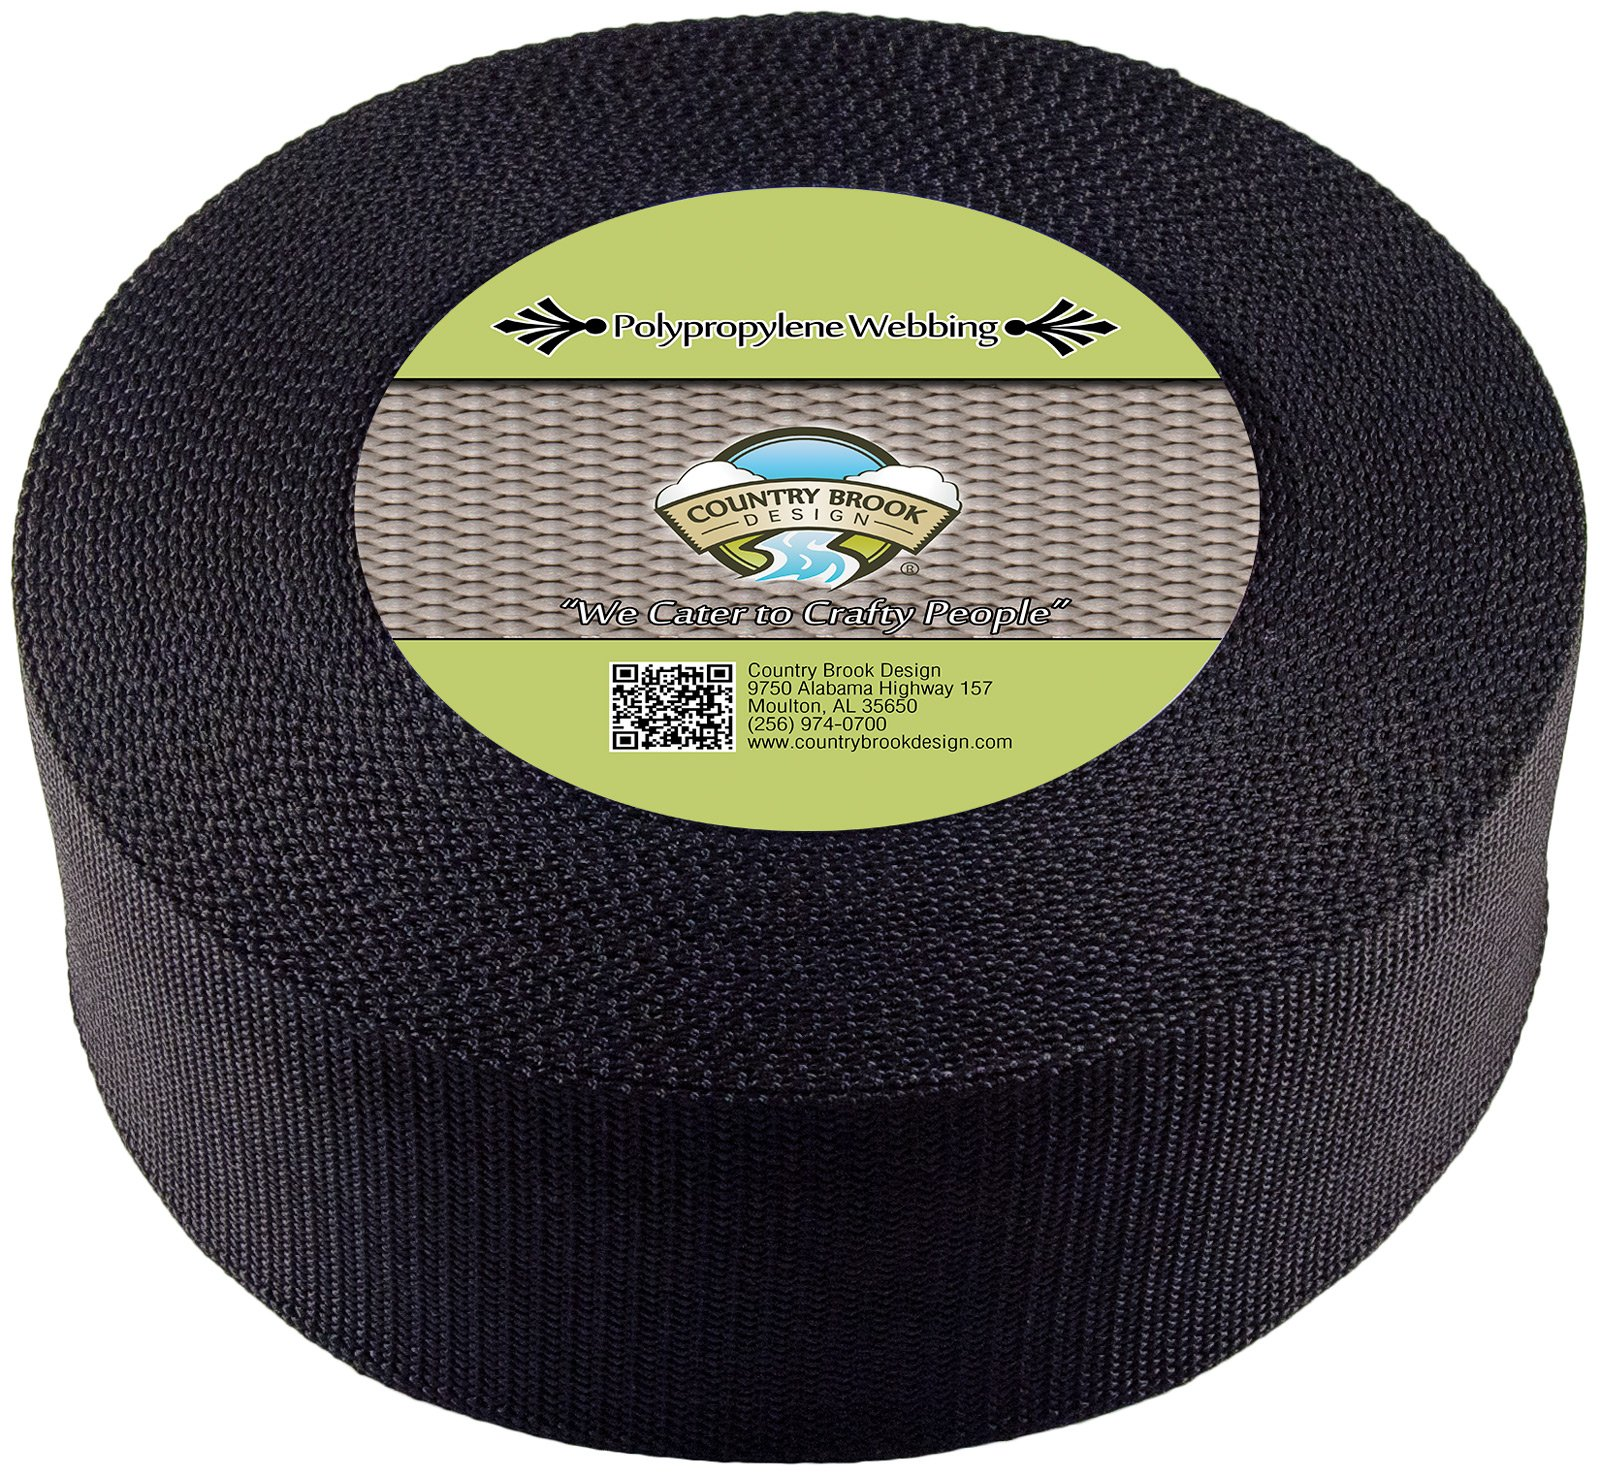 Country Brook Design 3 Inch Black Heavy Polypropylene (Polypro) Webbing, 5 Yards